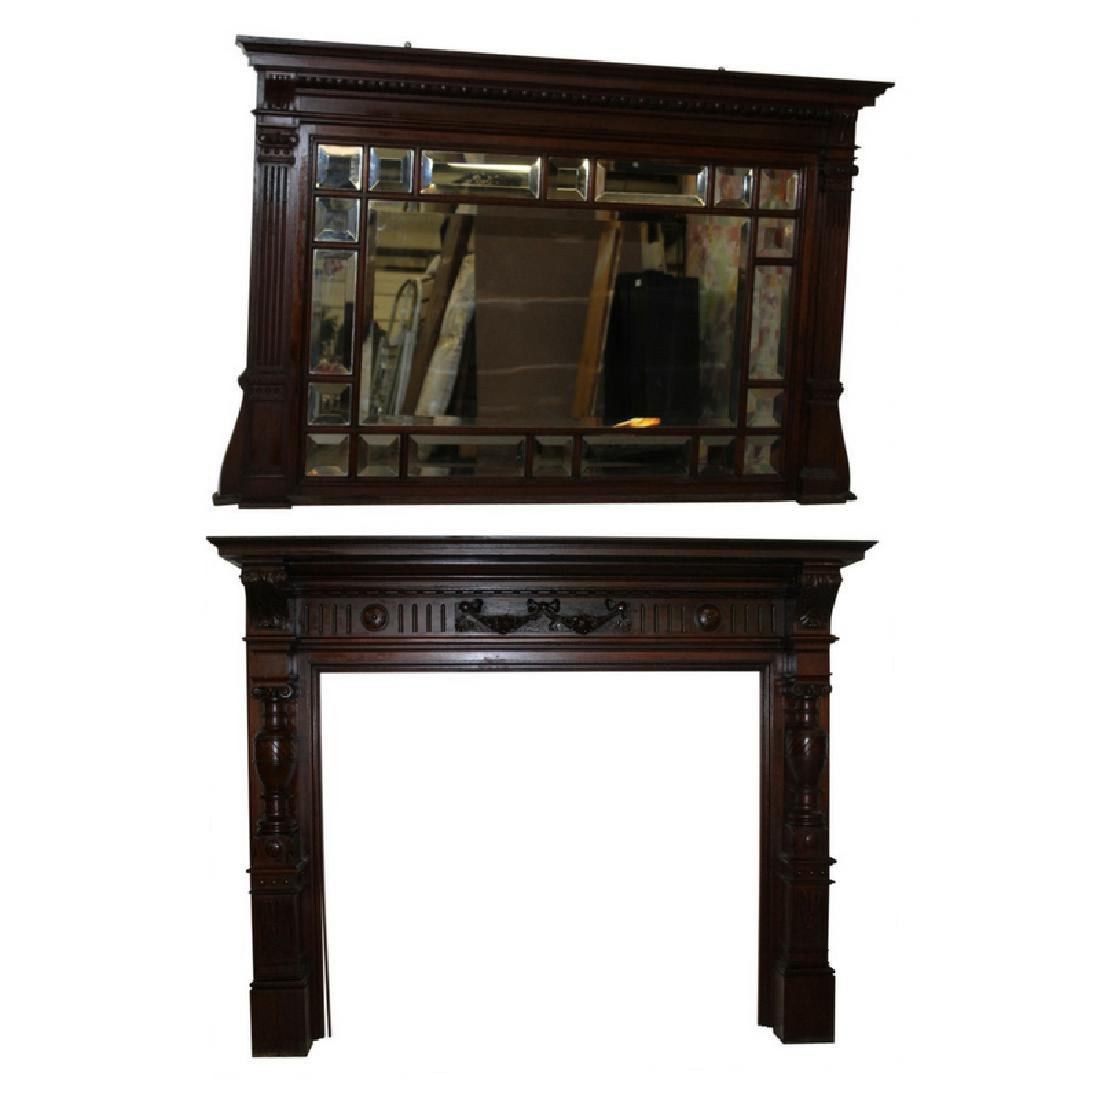 2 PC Victorian Mantel